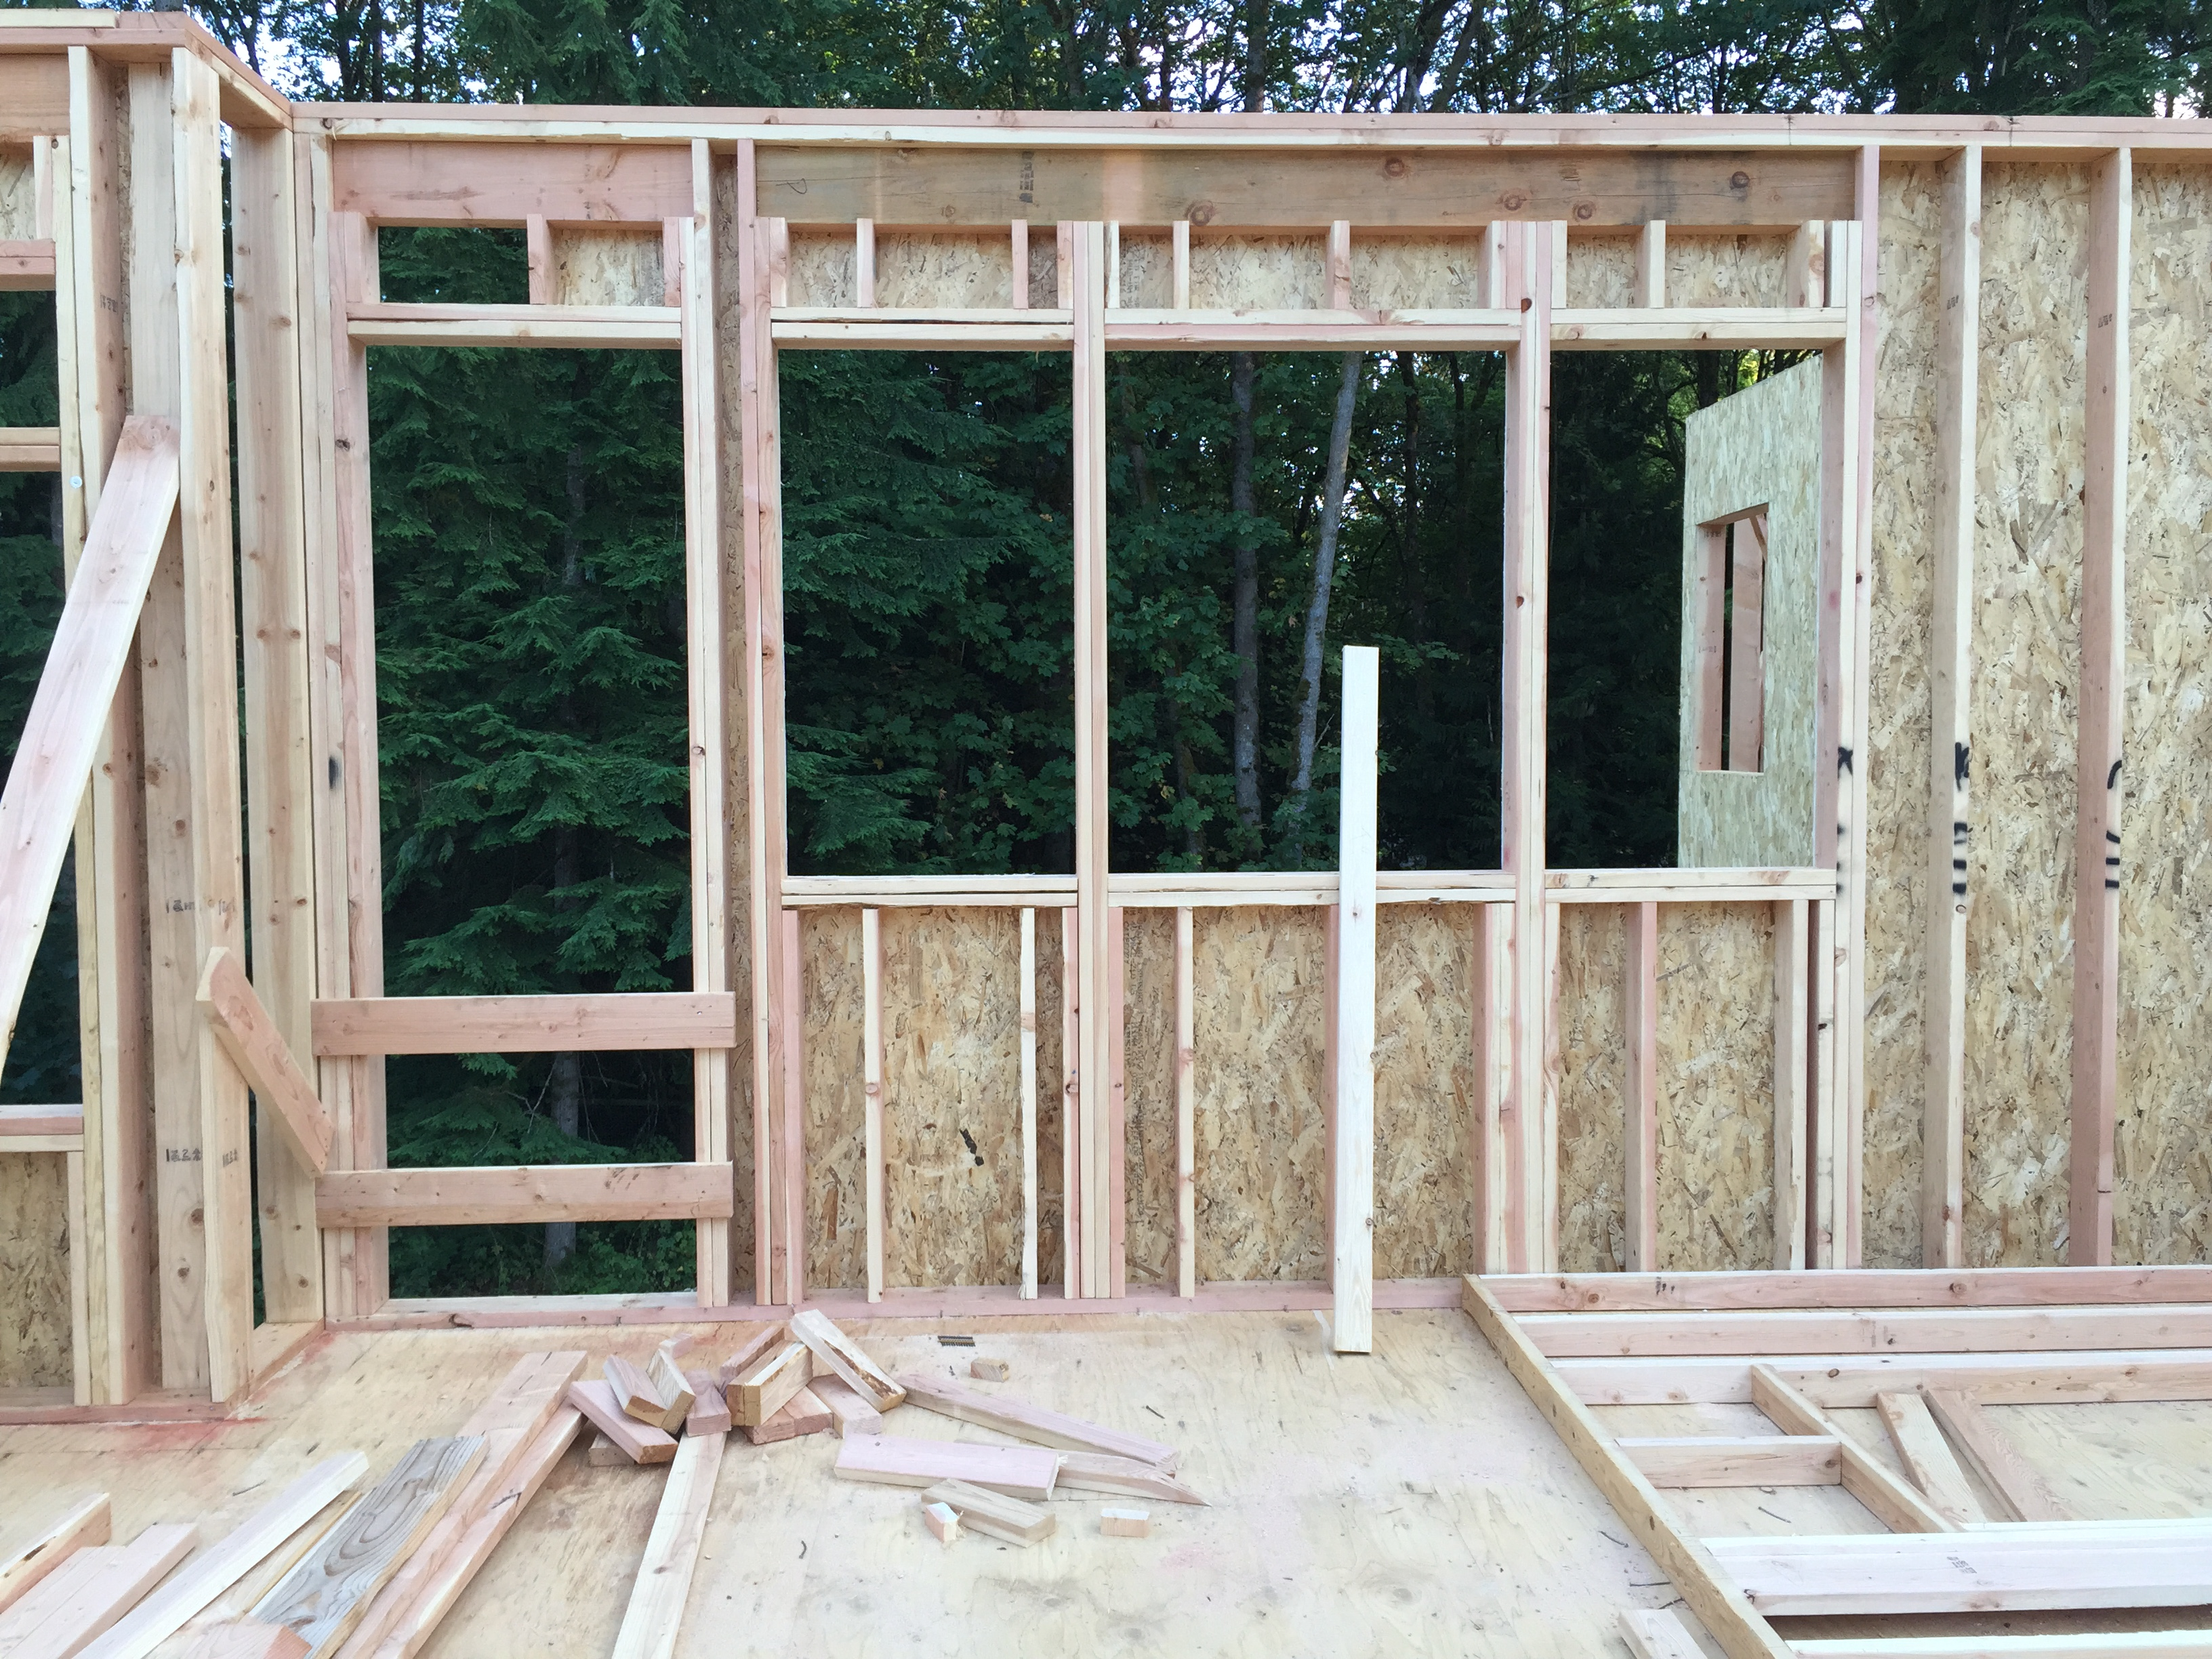 Fullsize Of Framing A Window